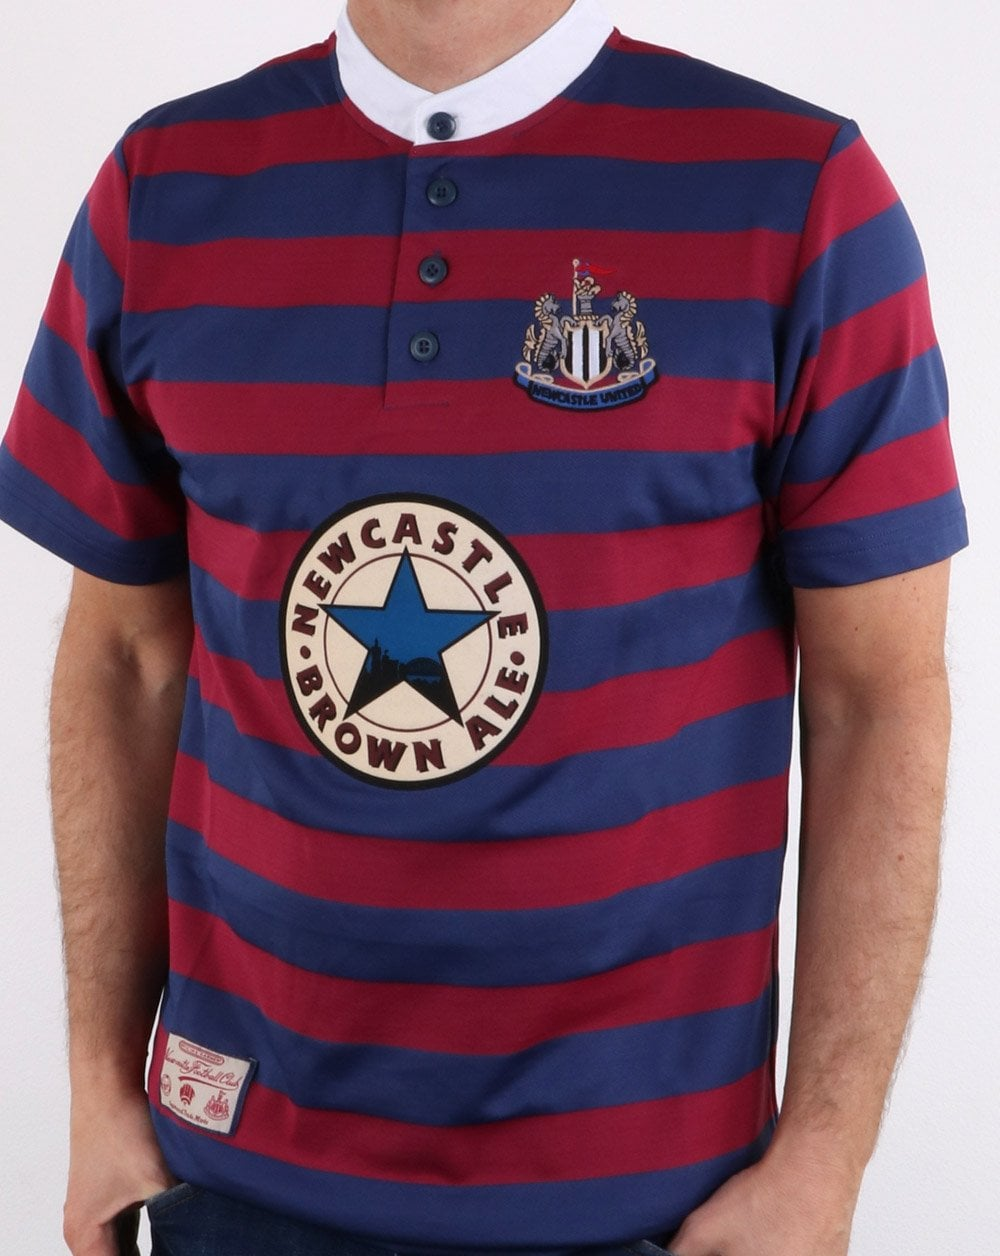 4d9d8bcc0d4 80s Casual Classics 80s Casual Classics Newcastle United 1996 Away Shirt  Claret navy